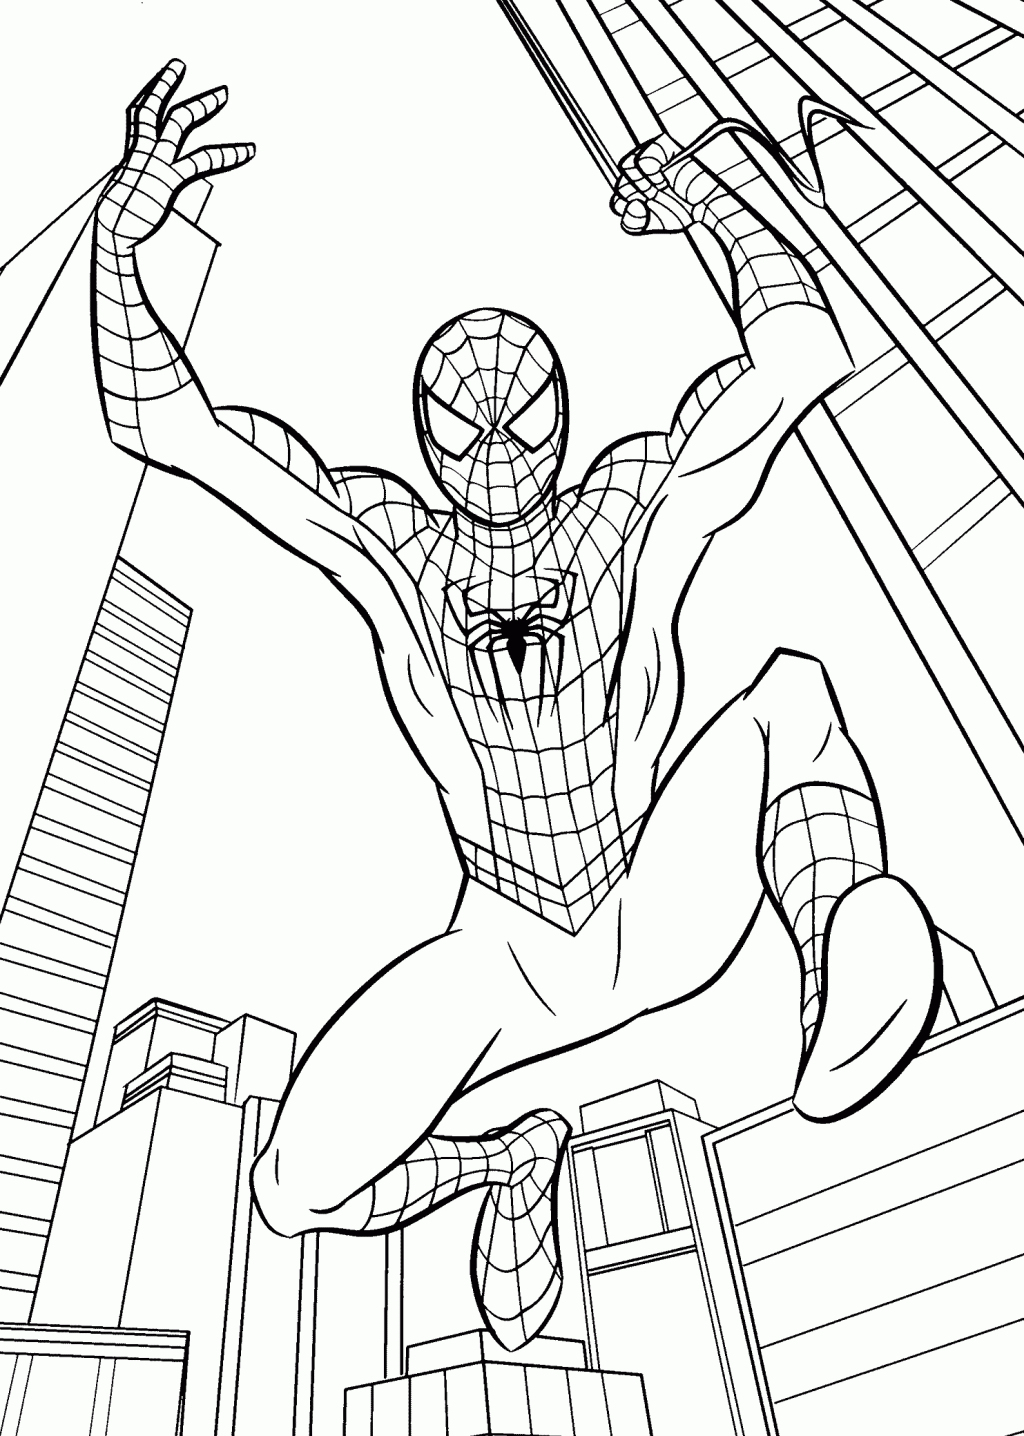 Coloring Page ~ Coloring Page Astonishing Free Printable Pages For | Spiderman Worksheets Free Printables